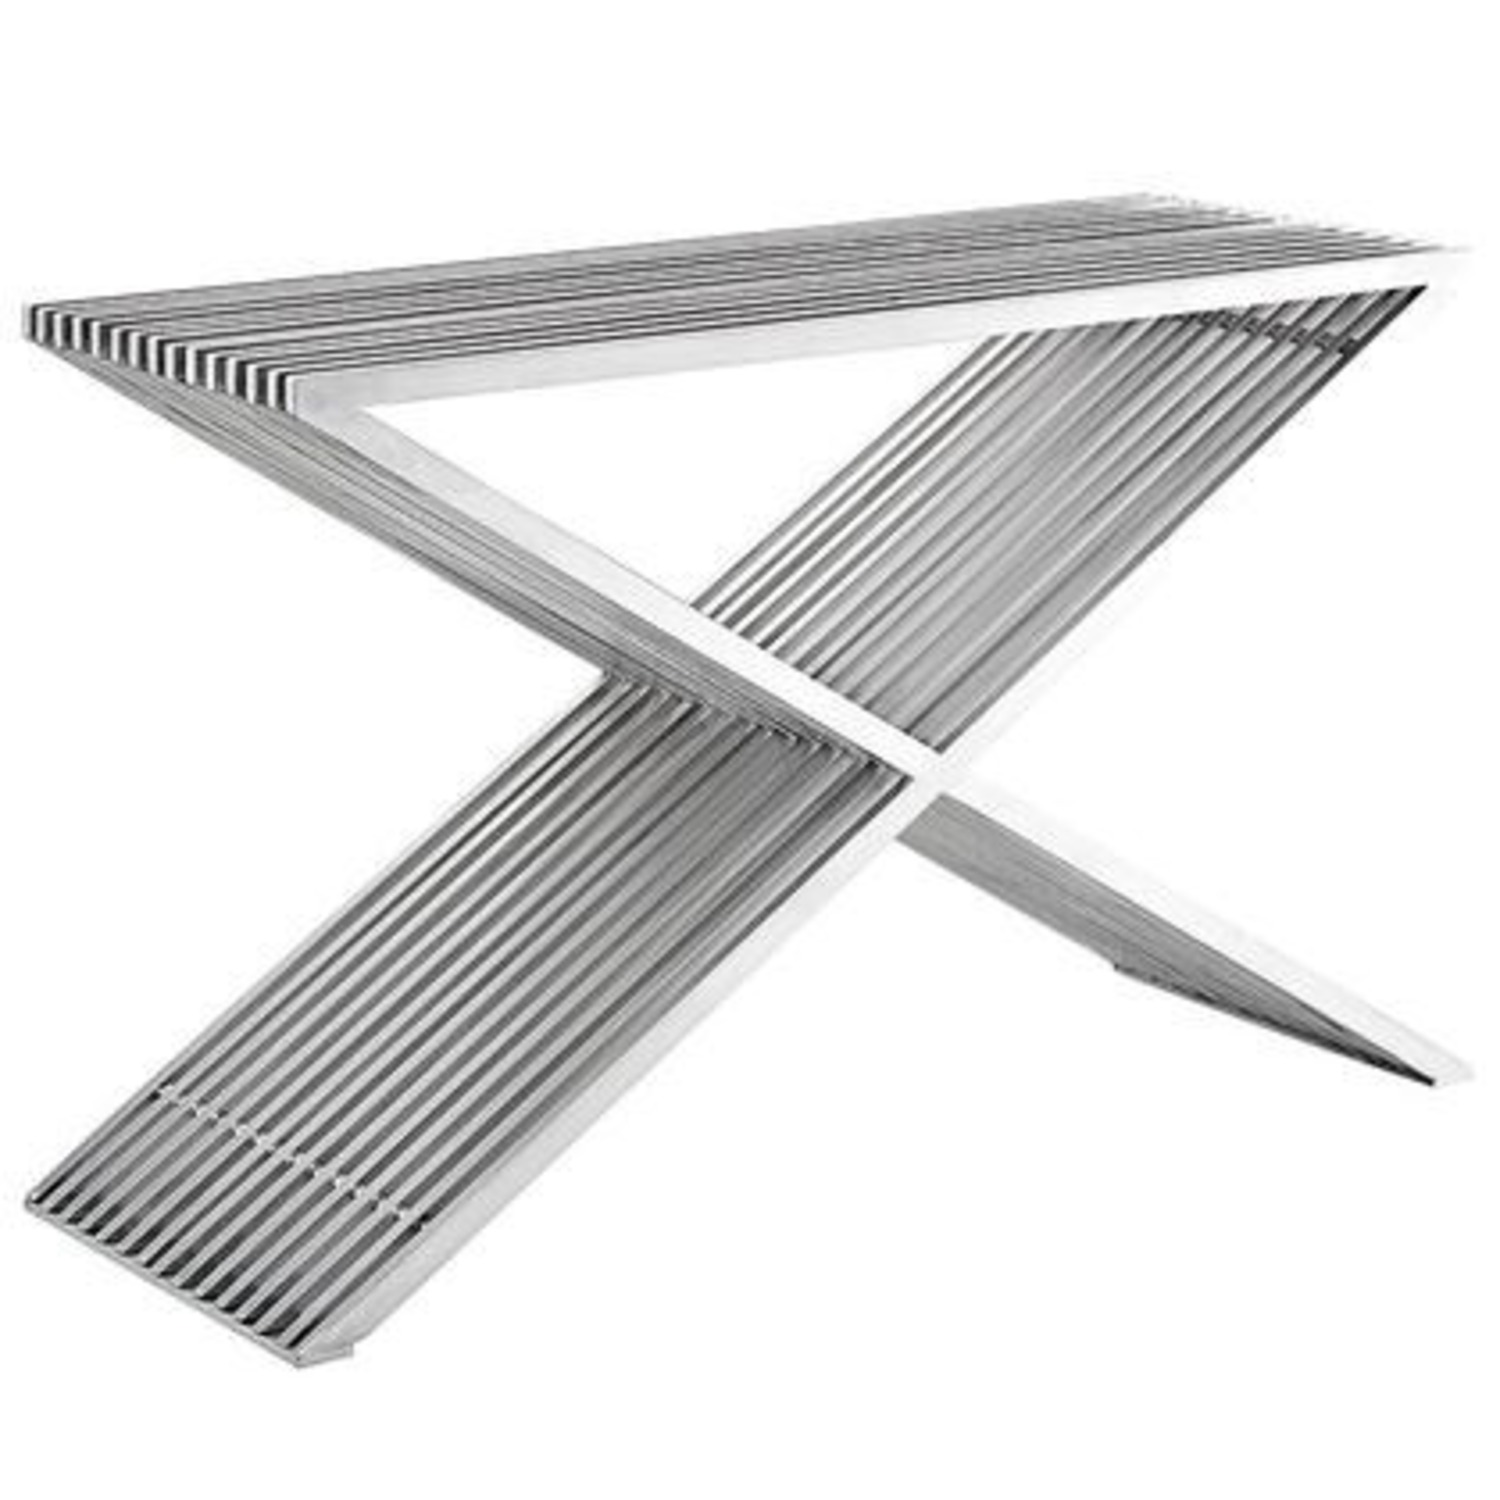 Console Table In Silver Brushed Aluminum Finish - image-1